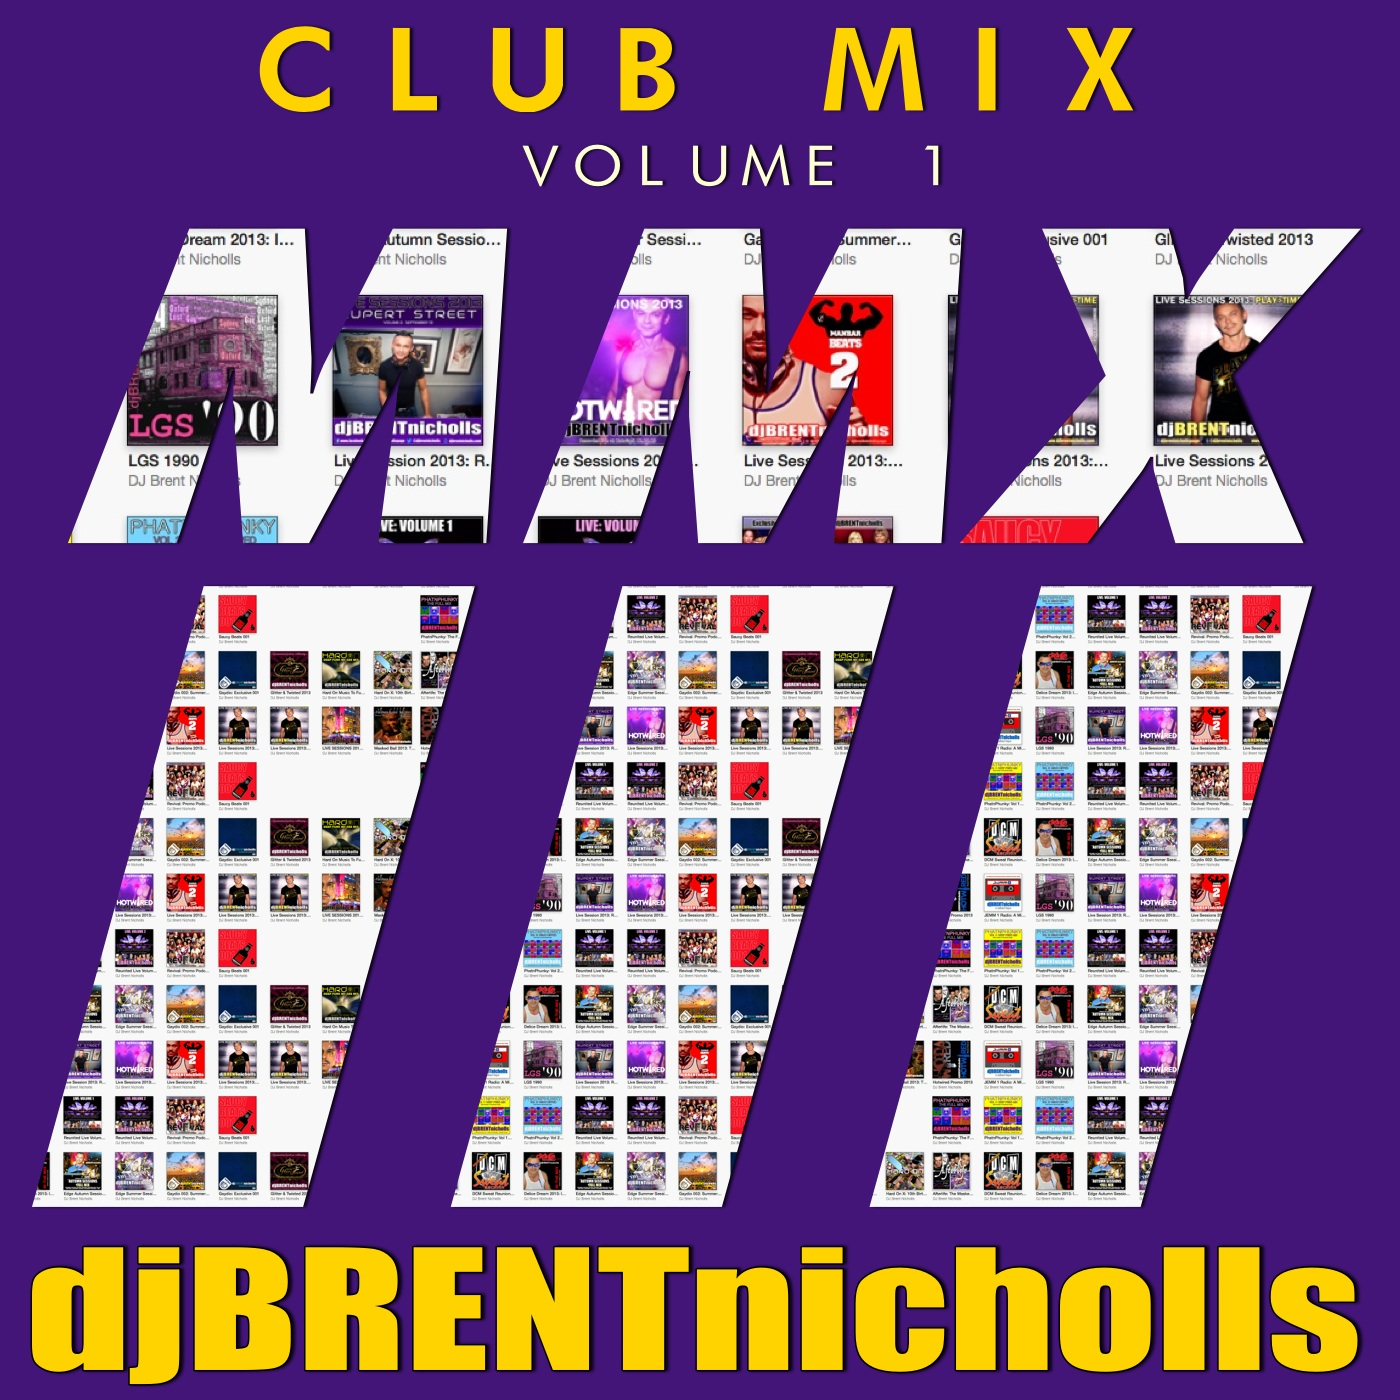 PODCAST: MMXIII -ANTHEMS 2013- THE CLUB MIX